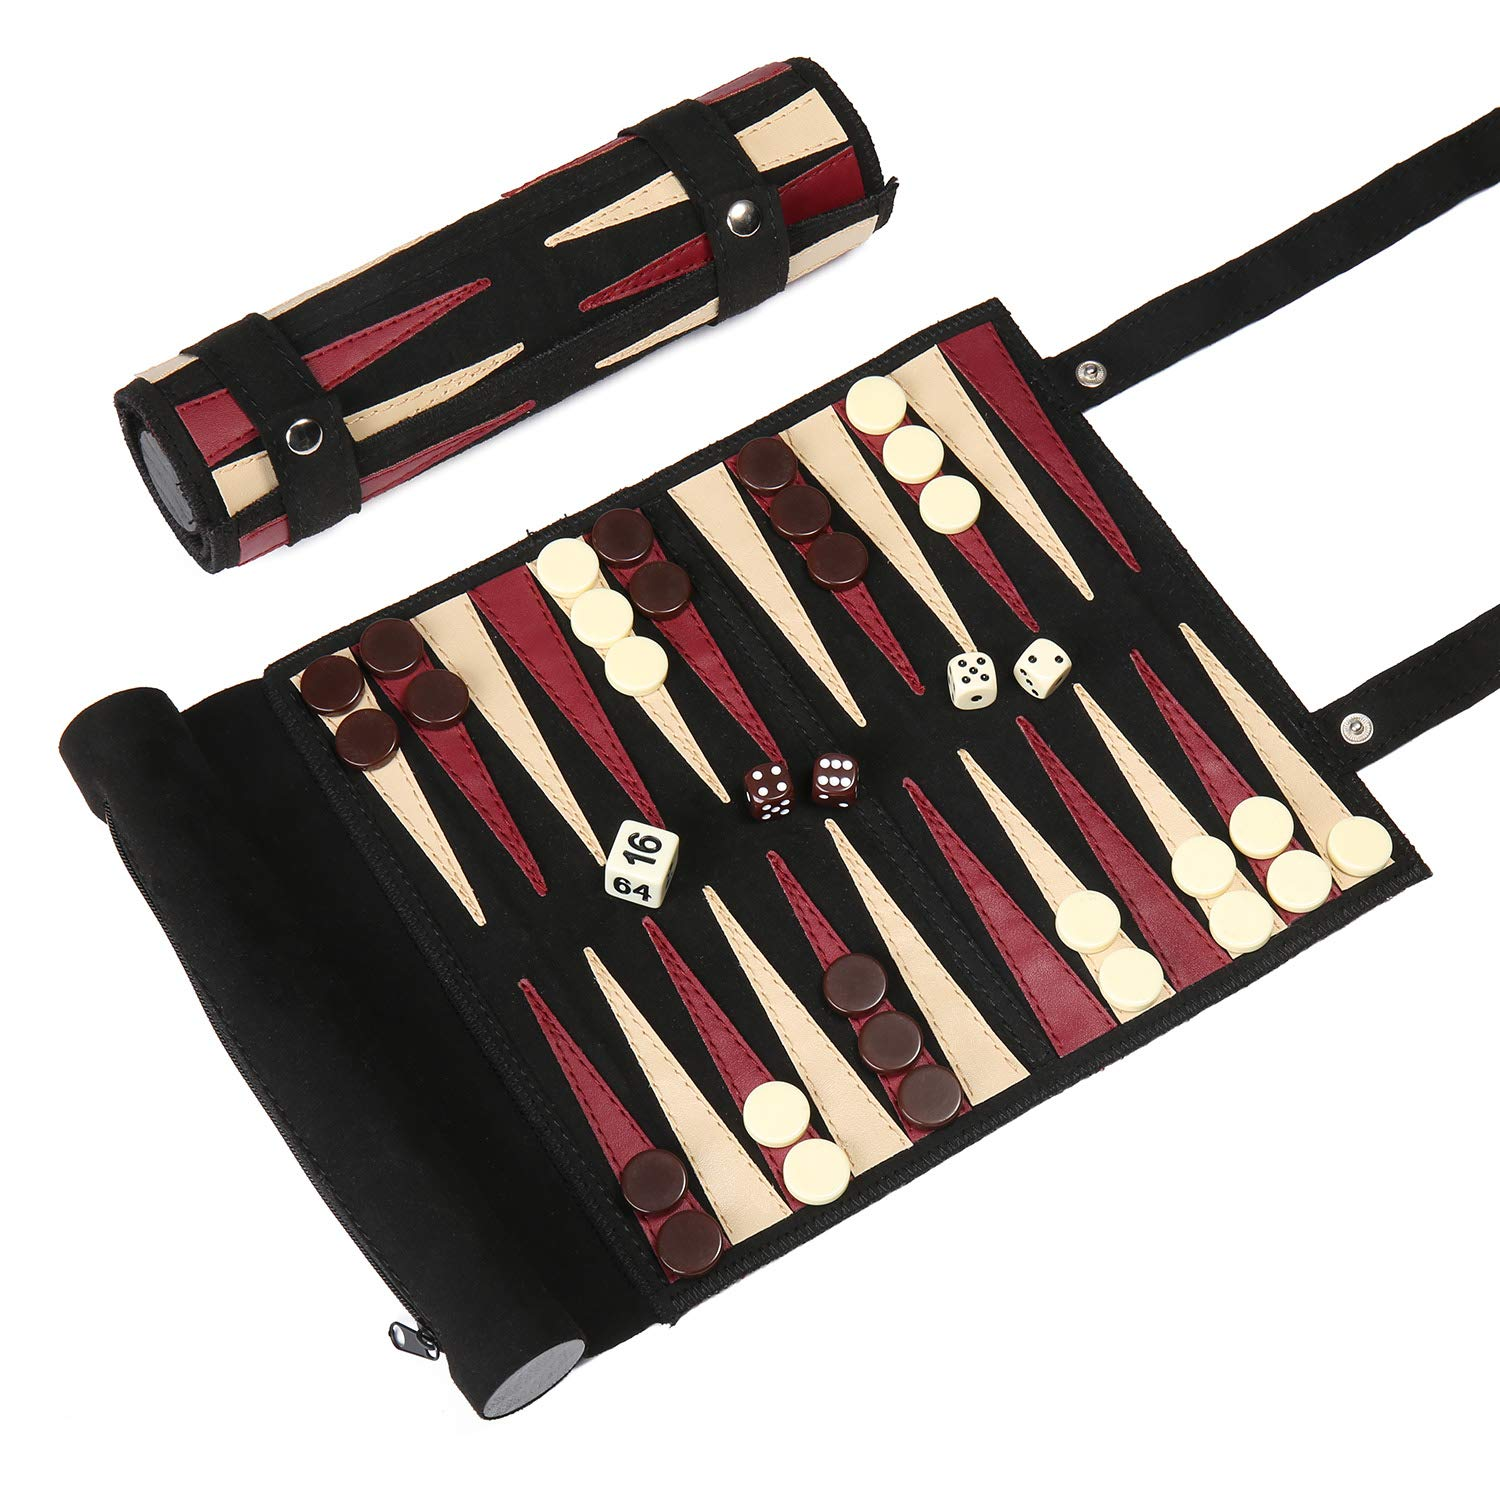 Woodronic Roll Up 3 in 1 Game Set, Backgammon Chess Checker Travel Game Set, Luxirous Suede Leather Travel Size with Gift Packaging, Black & Red